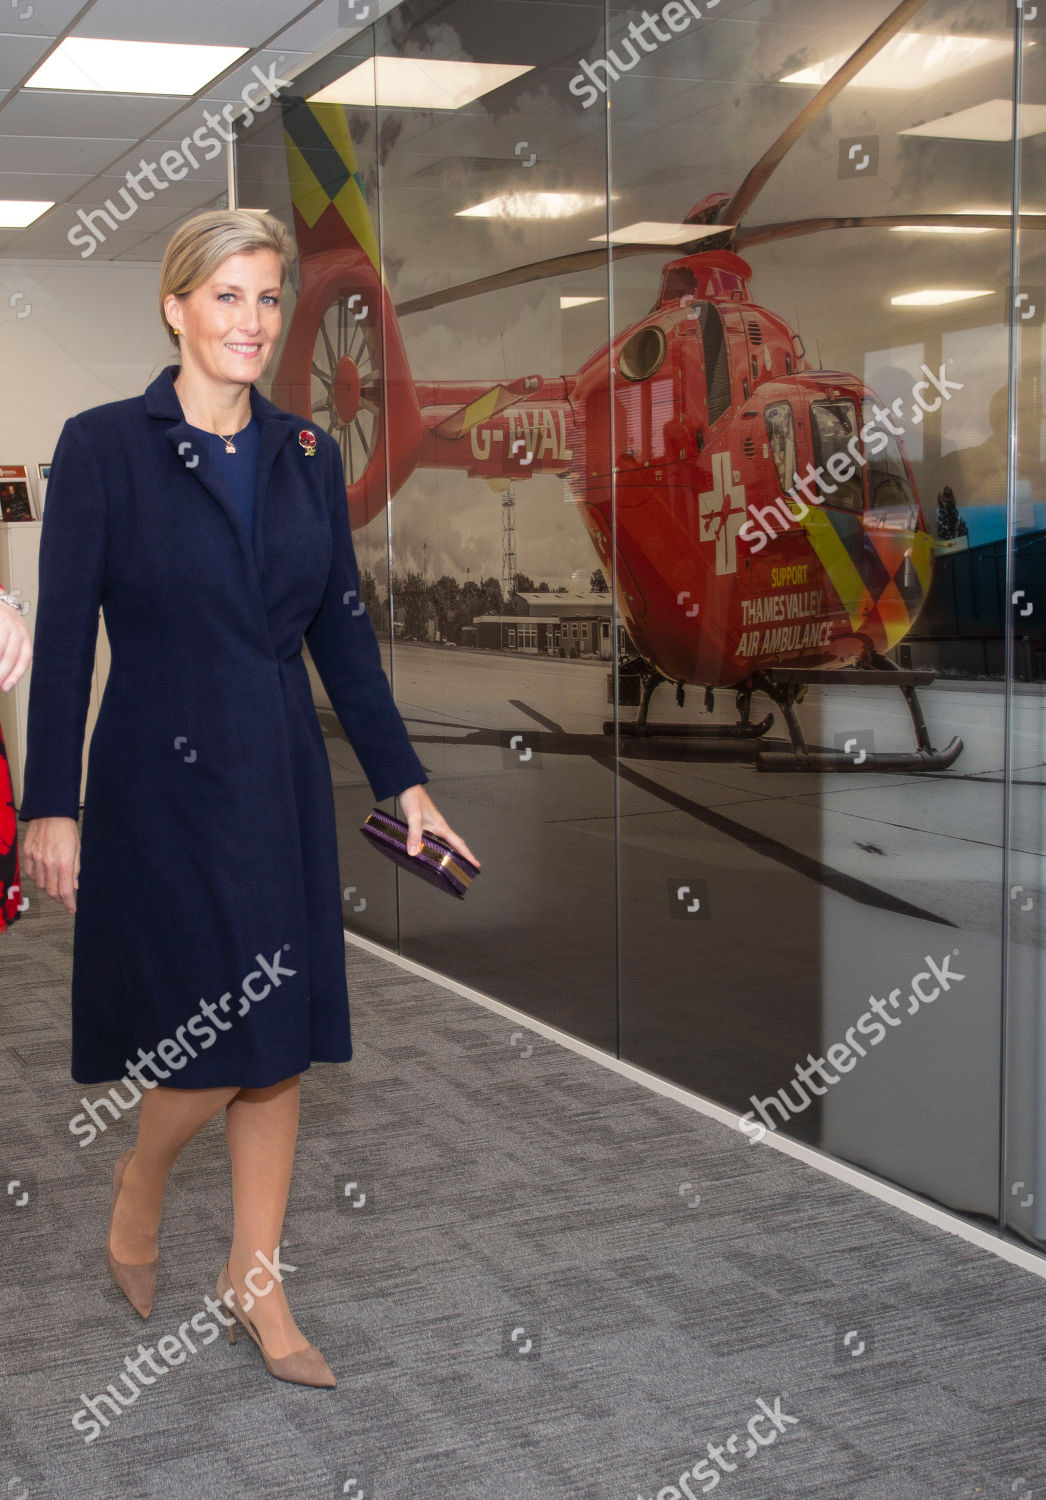 sophie-countess-of-wessex-opens-the-thames-valley-air-ambulance-headquarters-stokenchurch-buckinghamshire-uk-shutterstock-editorial-9968468t.jpg